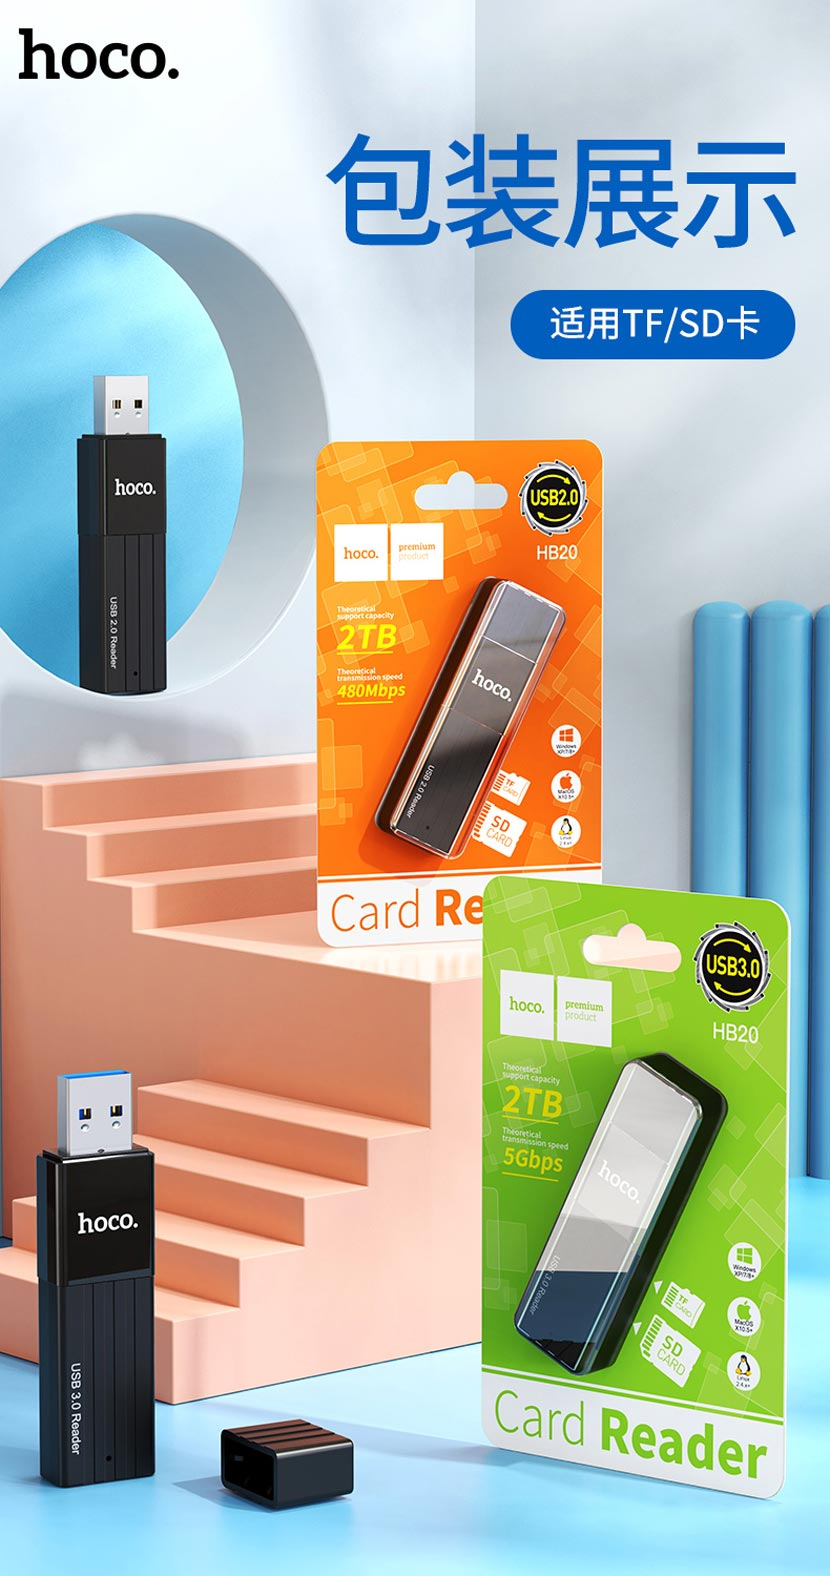 hoco news hb20 mindful 2in1 card reader package cn